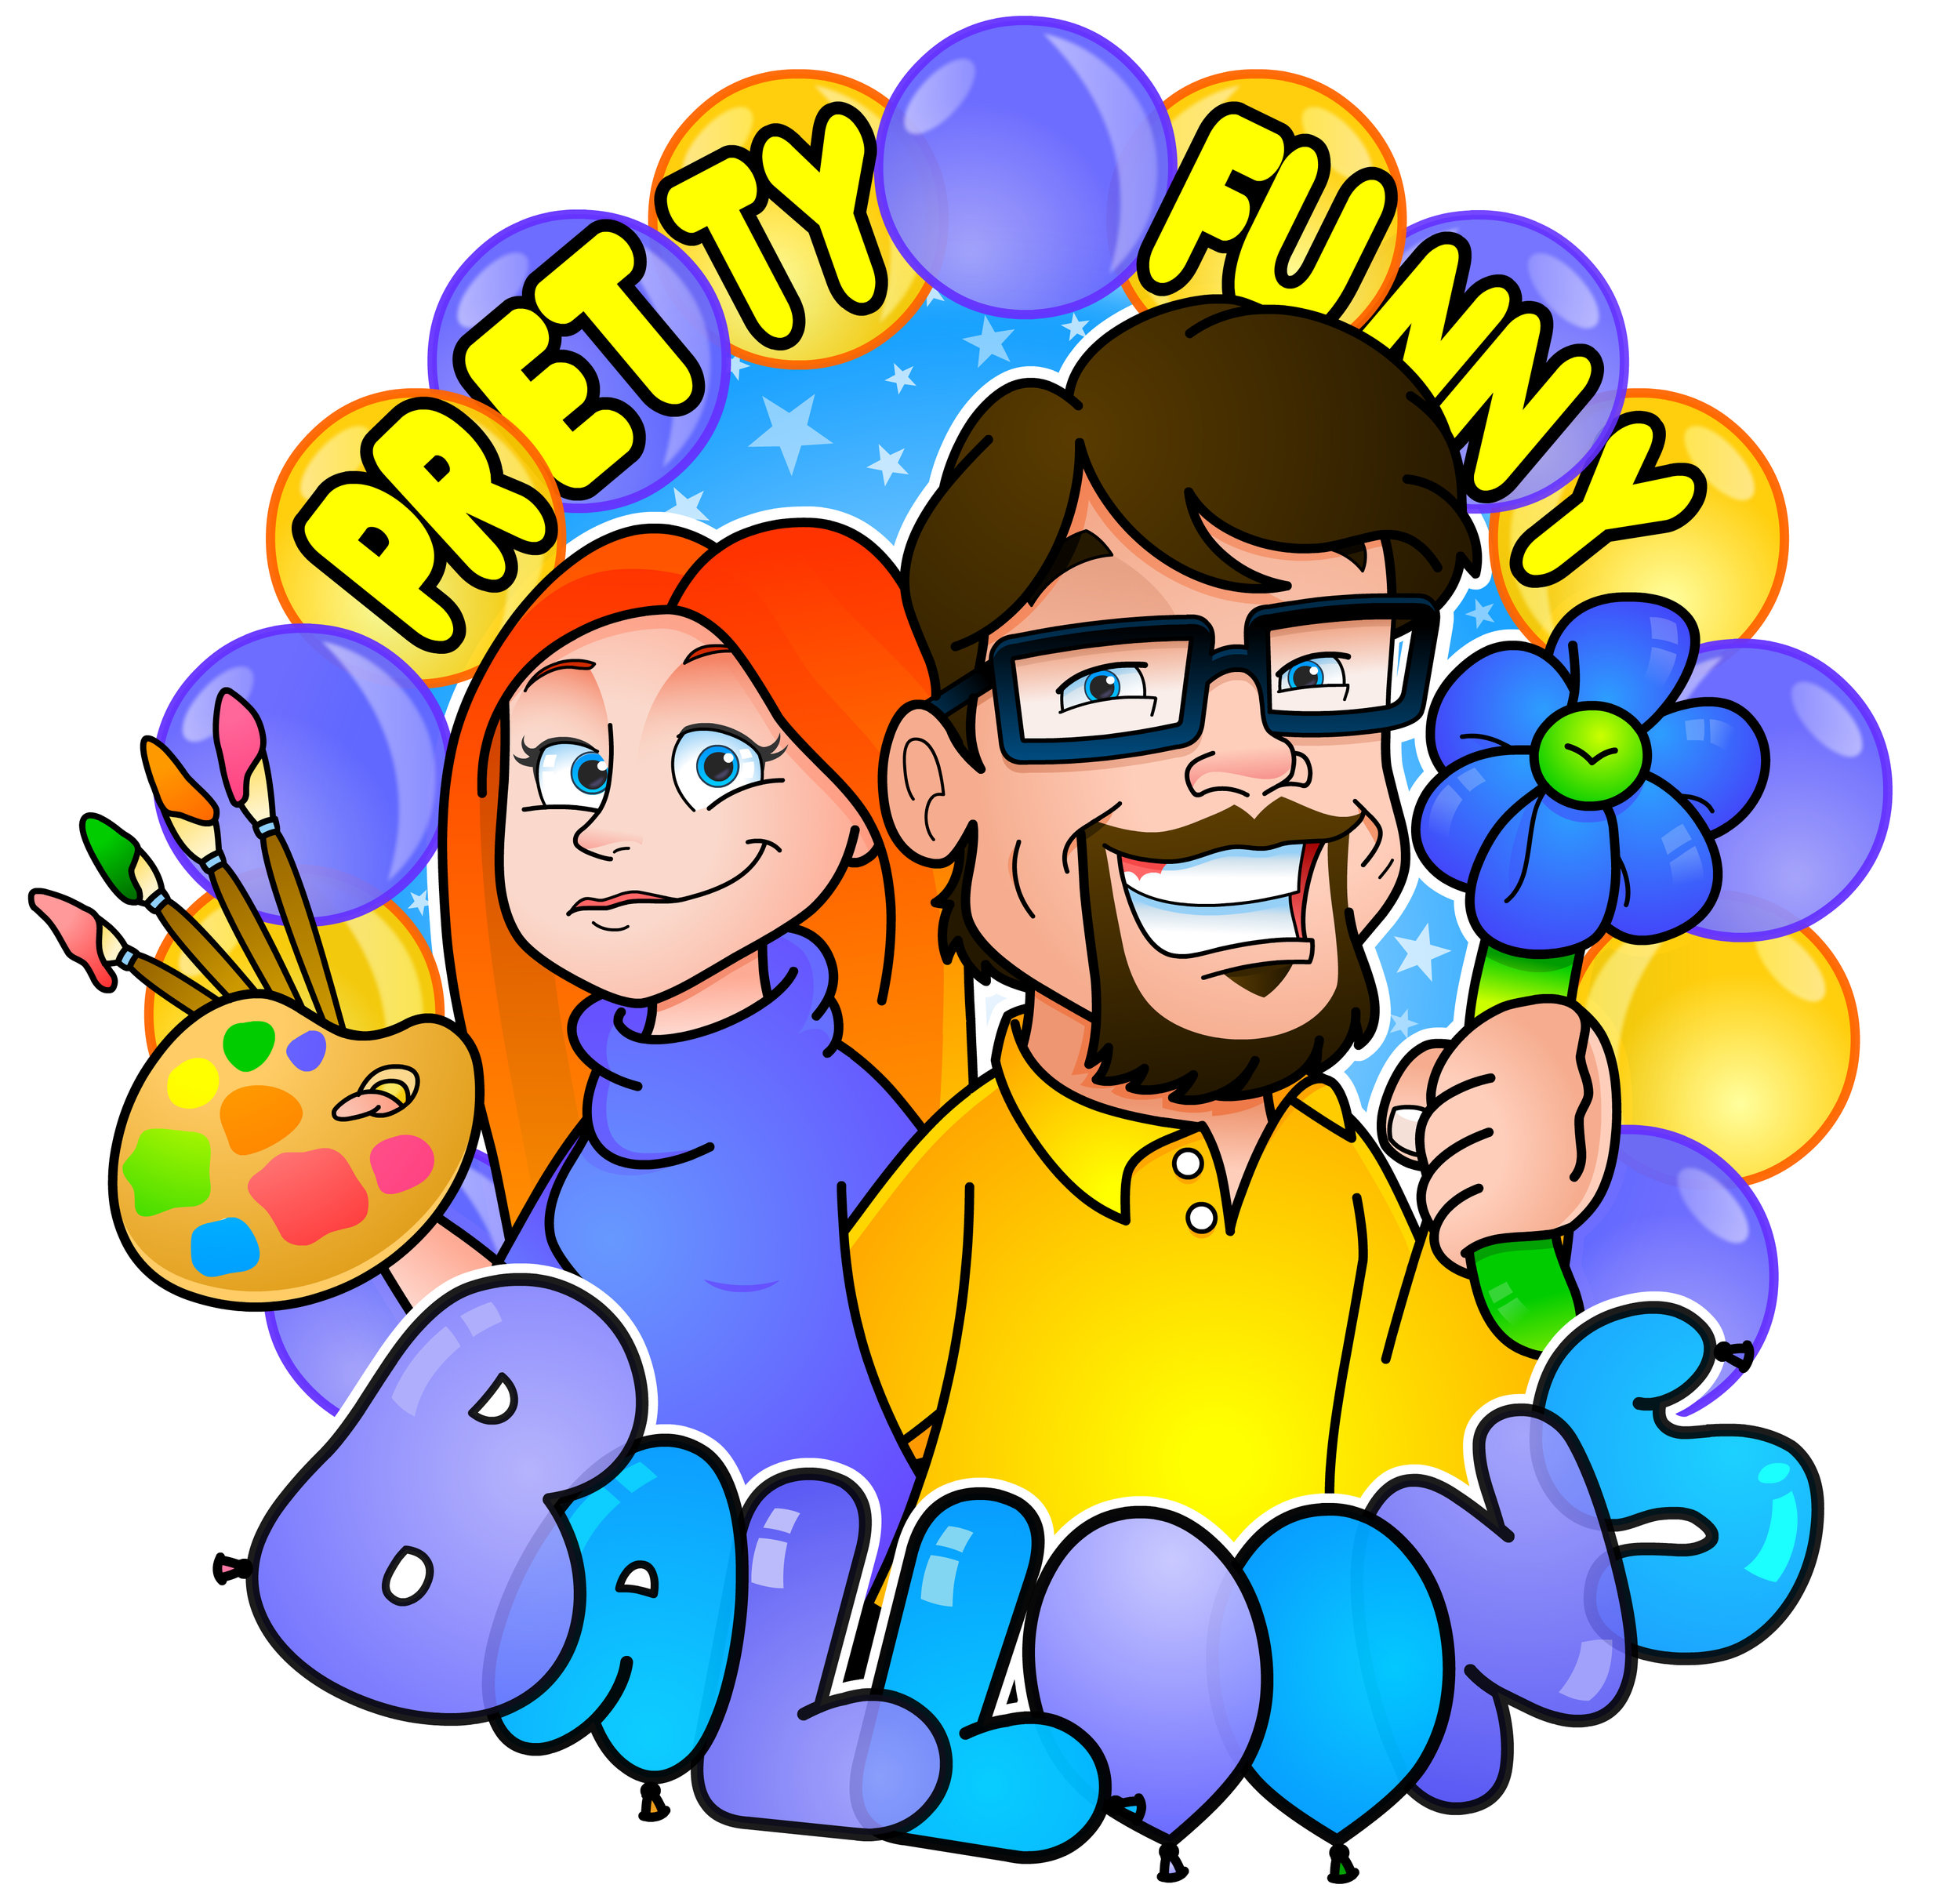 Brian Getz PROMO PIC Pretty Funny Balloons 9.2016 NEW.jpg